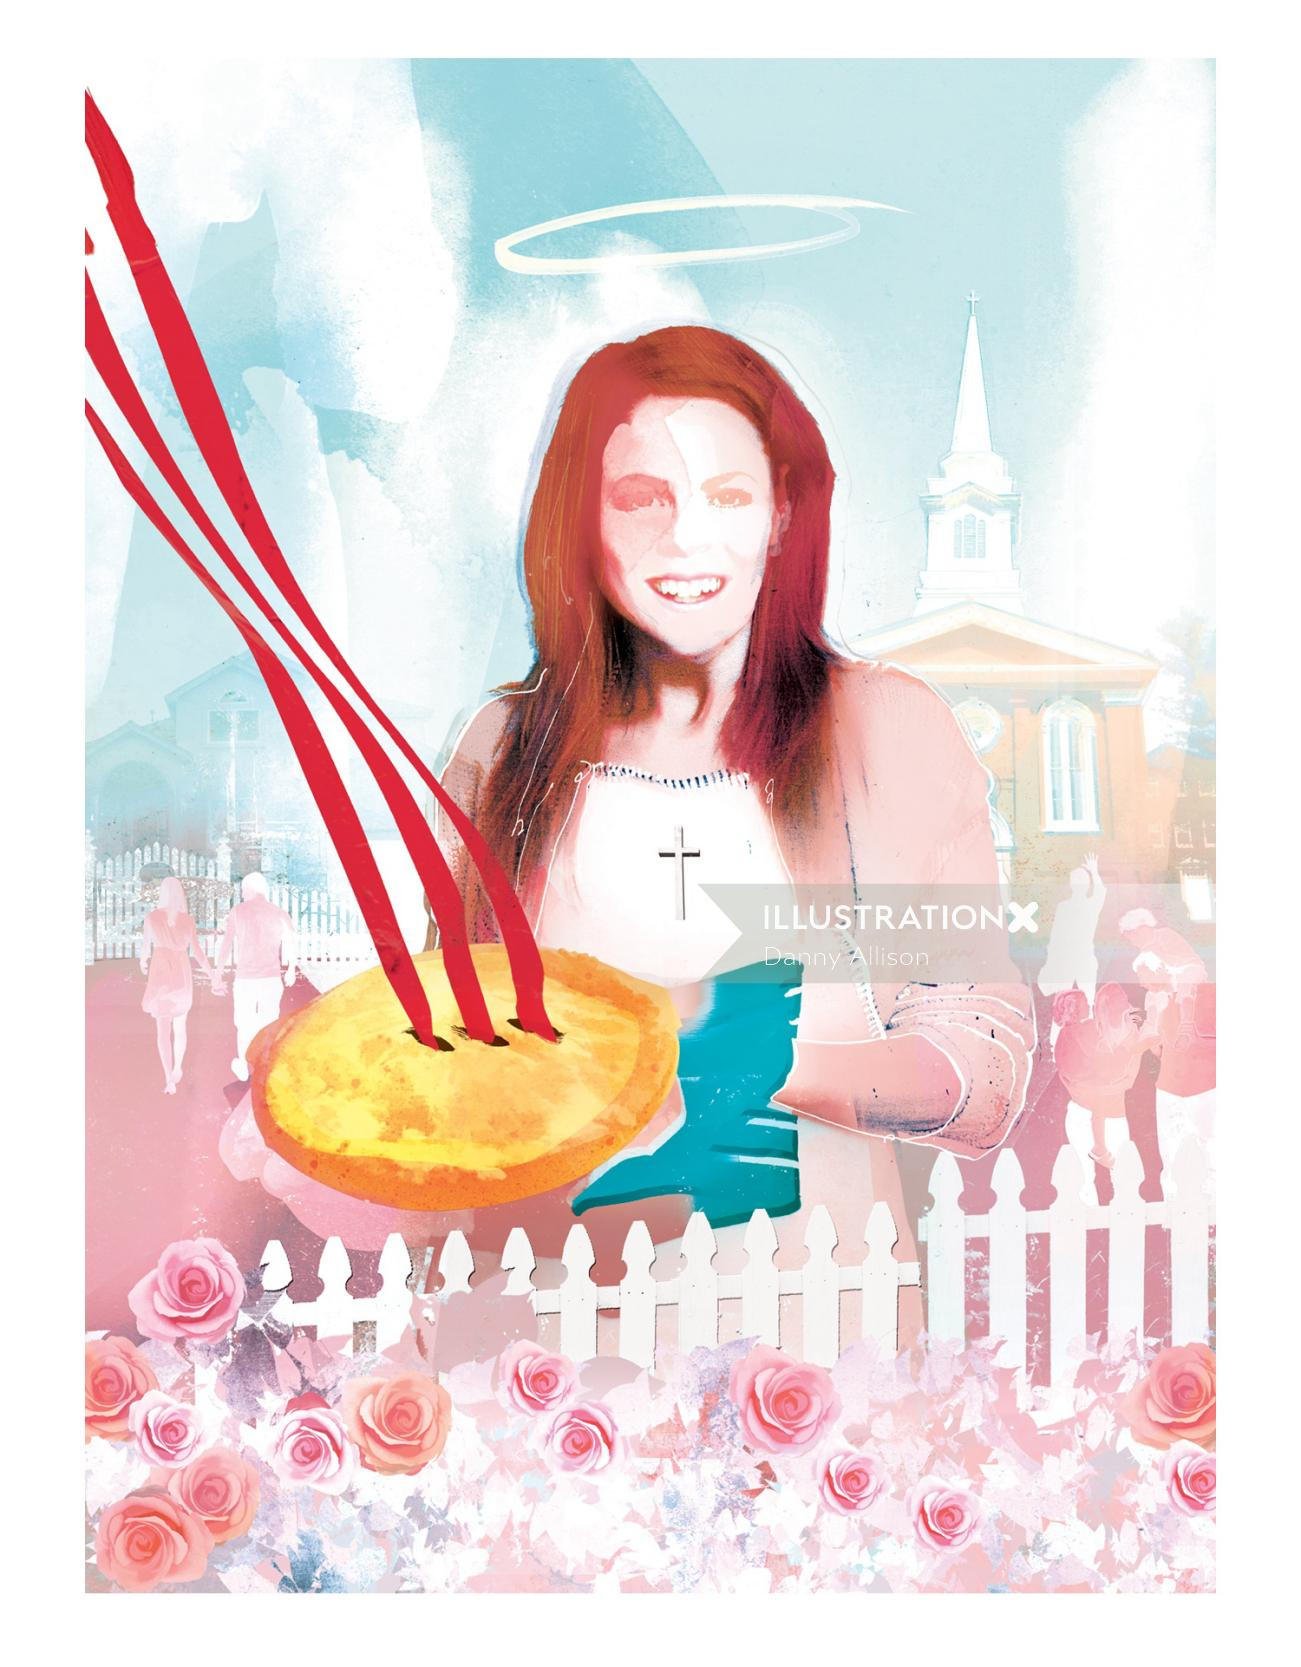 usa flag eagle stepford wives desperate houswives pie church christian picket fence rose religios